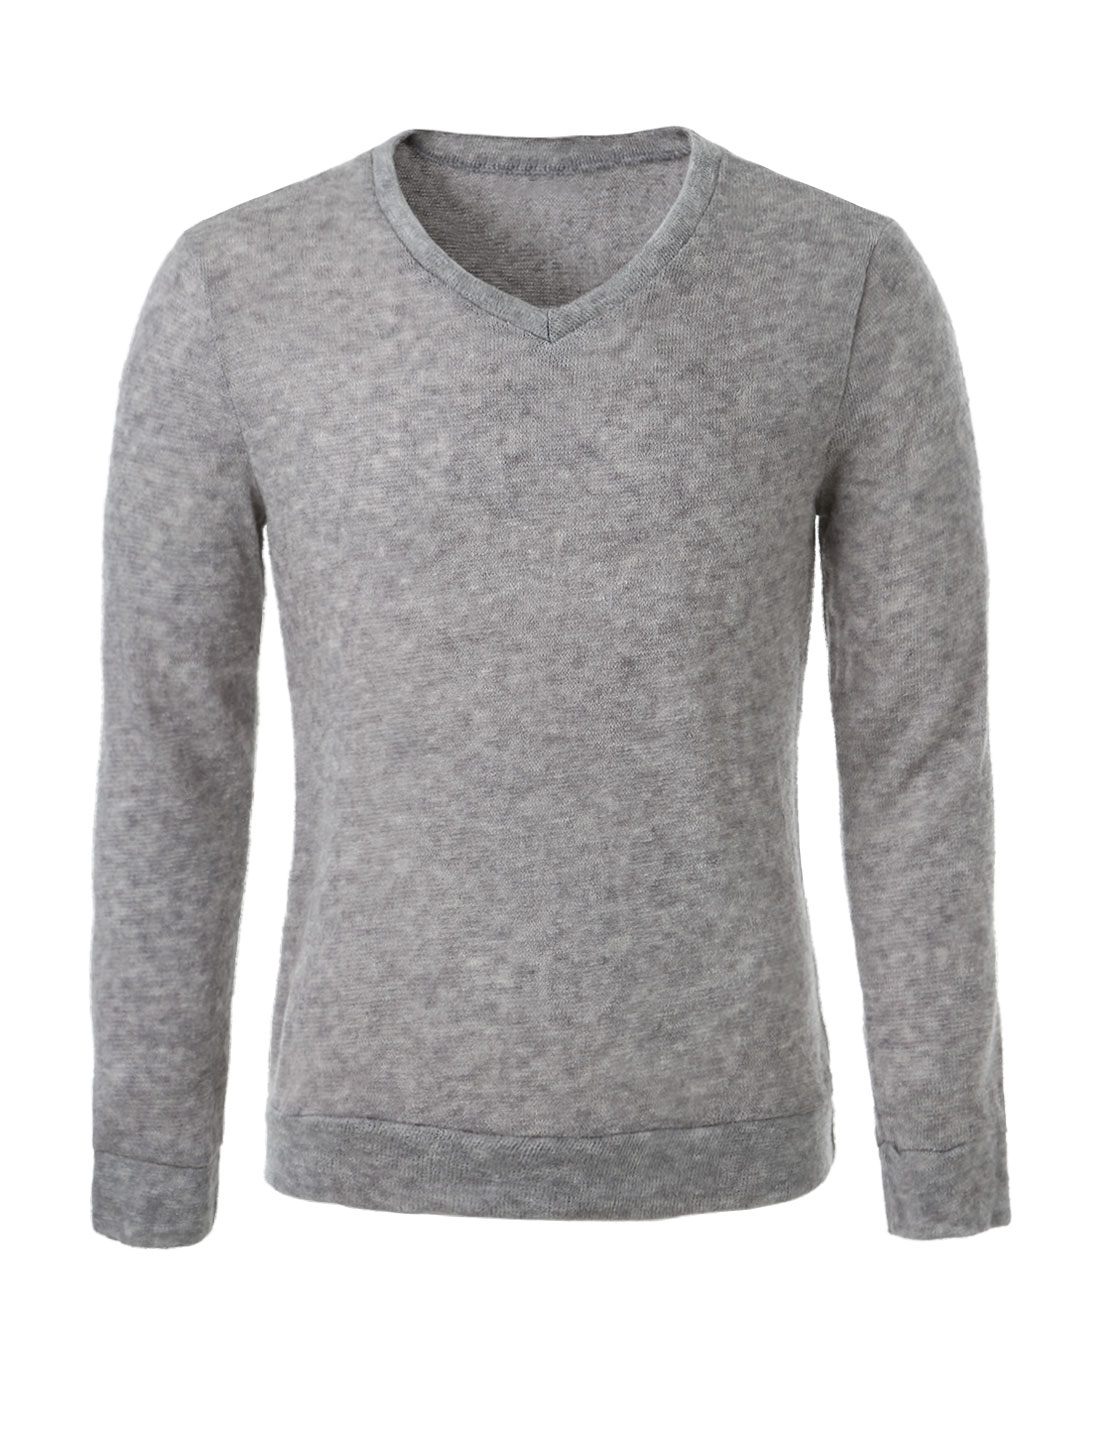 Man Long Sleeves Slim Fit Casual V-neck Sweater Heather Gray L